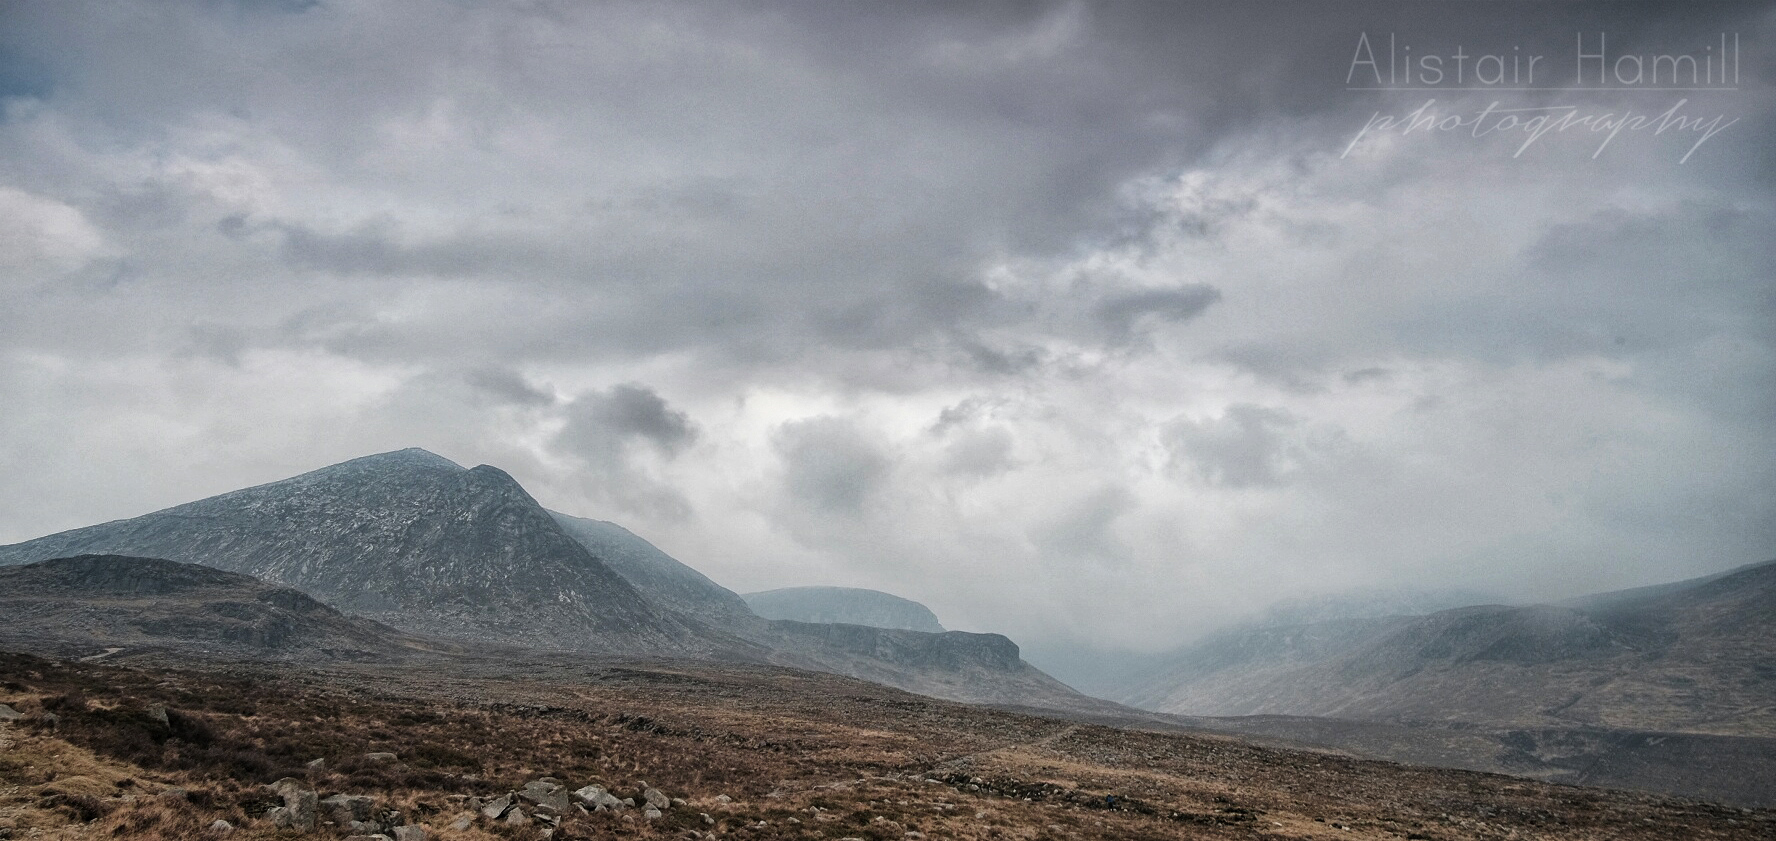 Lamagan and the Annalong Valley. Donard is hidden in the cloud in the background.